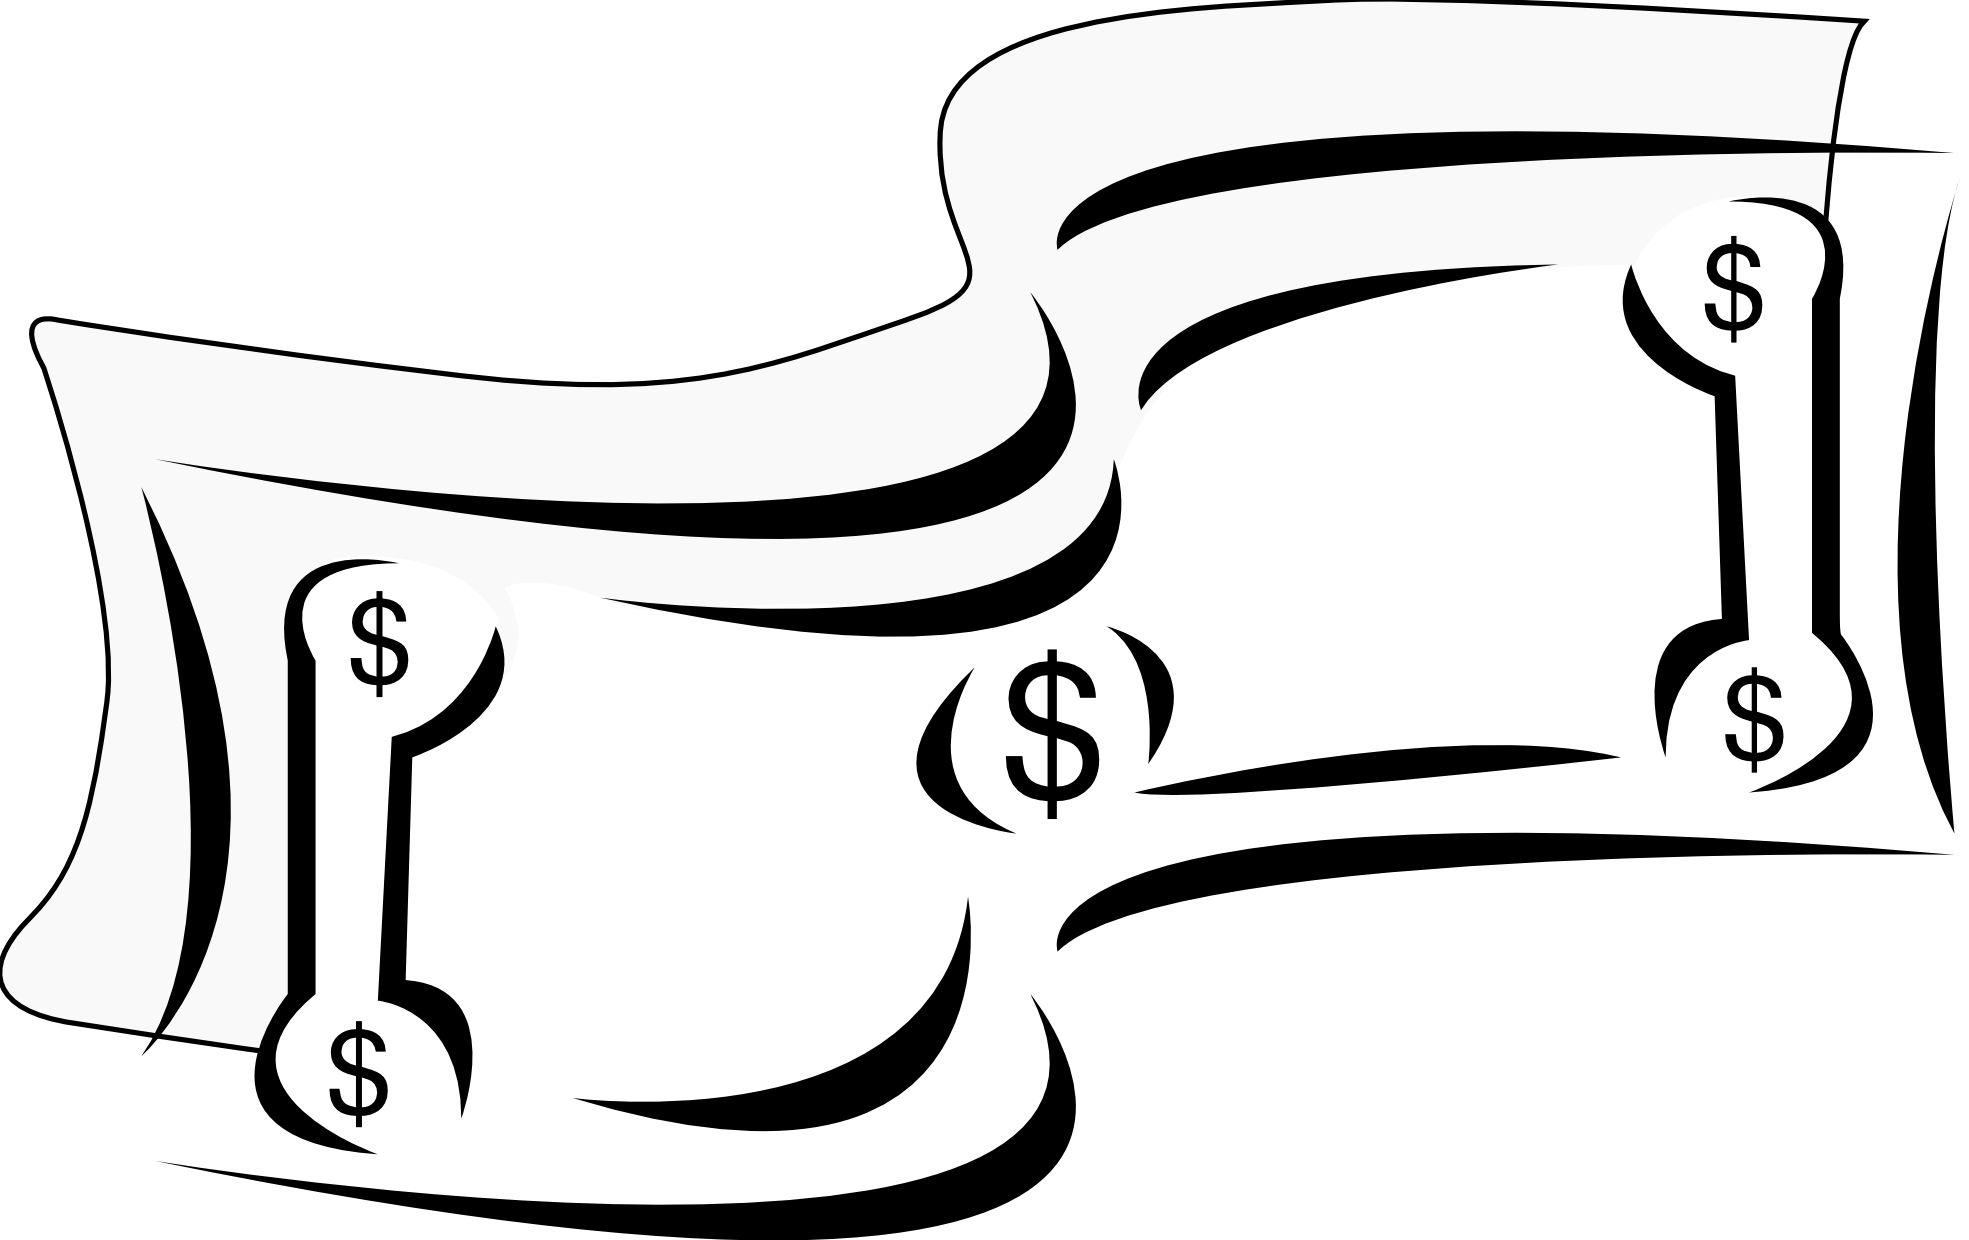 Cash clipart billing Bills  Free Black Clipart